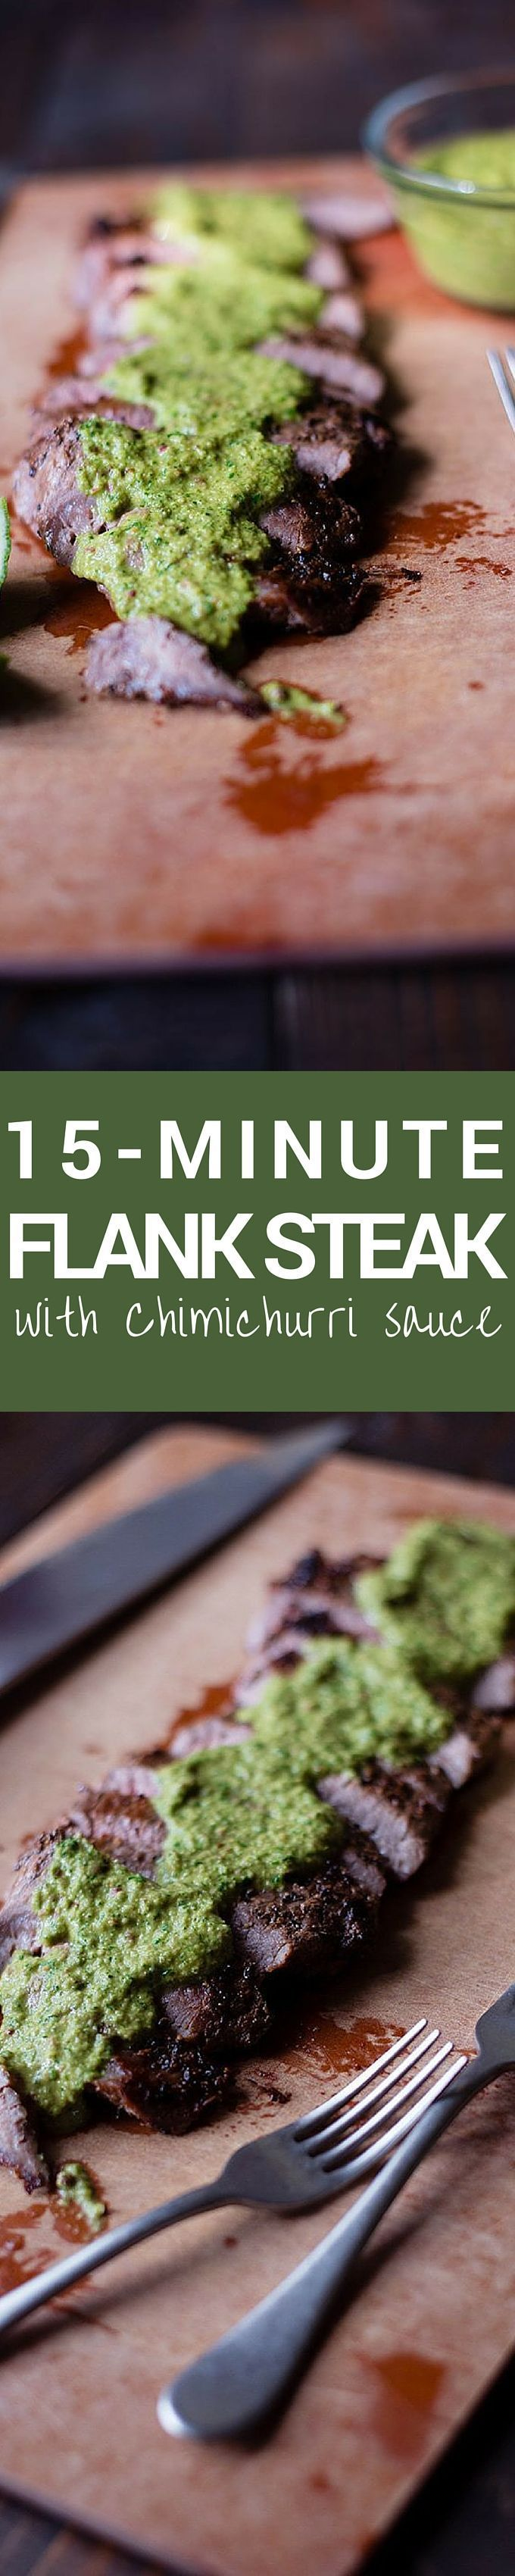 This is an easy 15 minute dish great for weeknight dinners. This easy Flank Steak With Chimichurri Sauce that is healthy, fast, and super tasty!